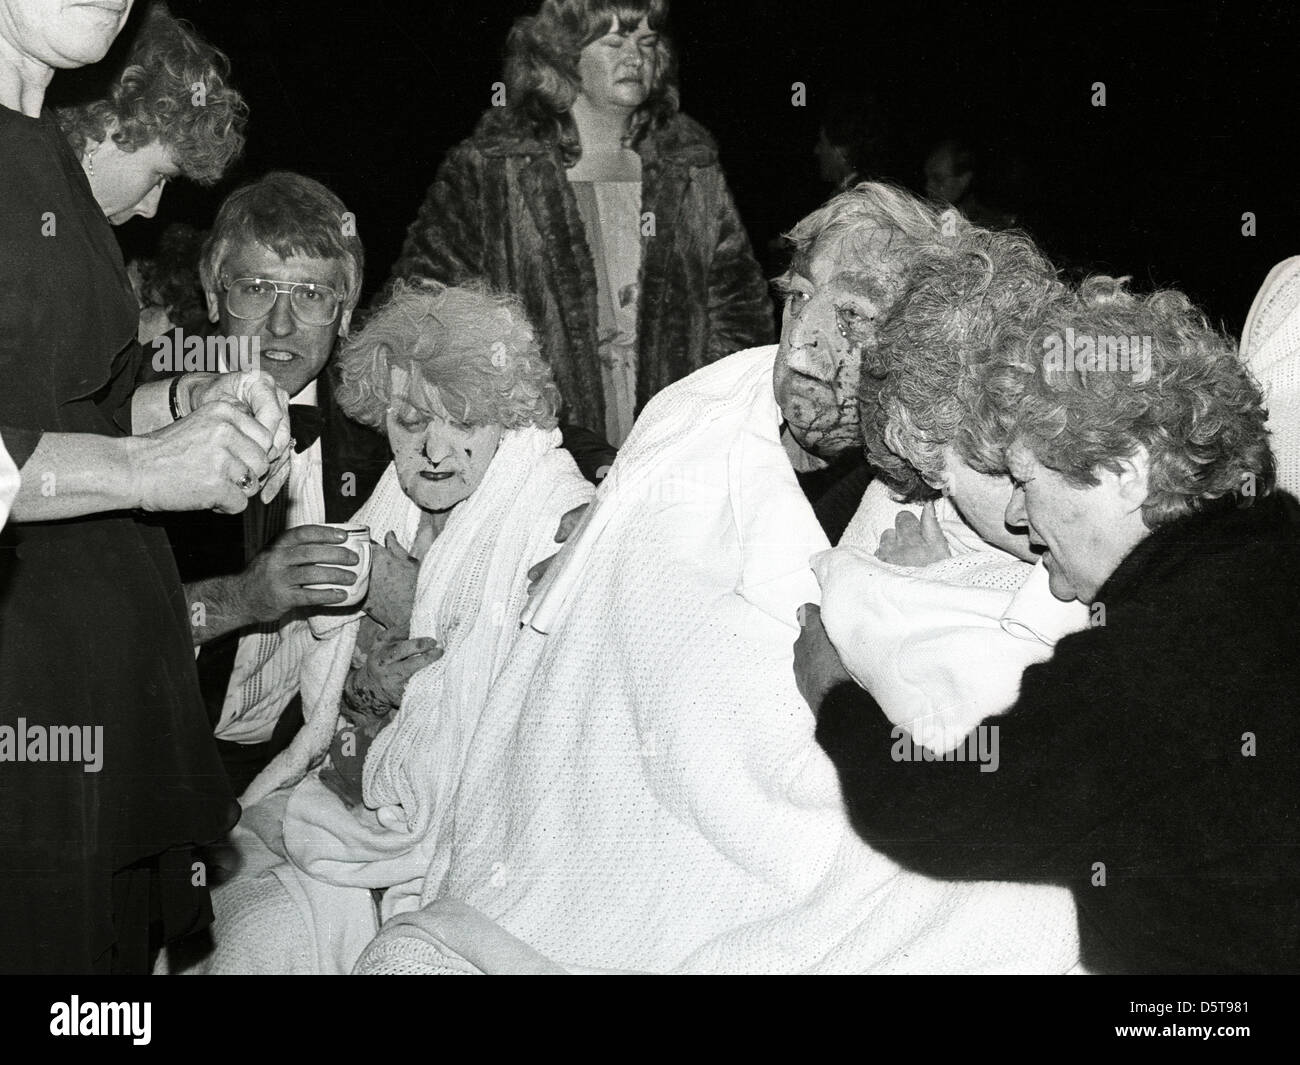 Shocked, dust covered guests at the Grand Hotel, Brighton after IRA bomb attack on Mrs Thatcher, 12th October 1984 - Stock Image